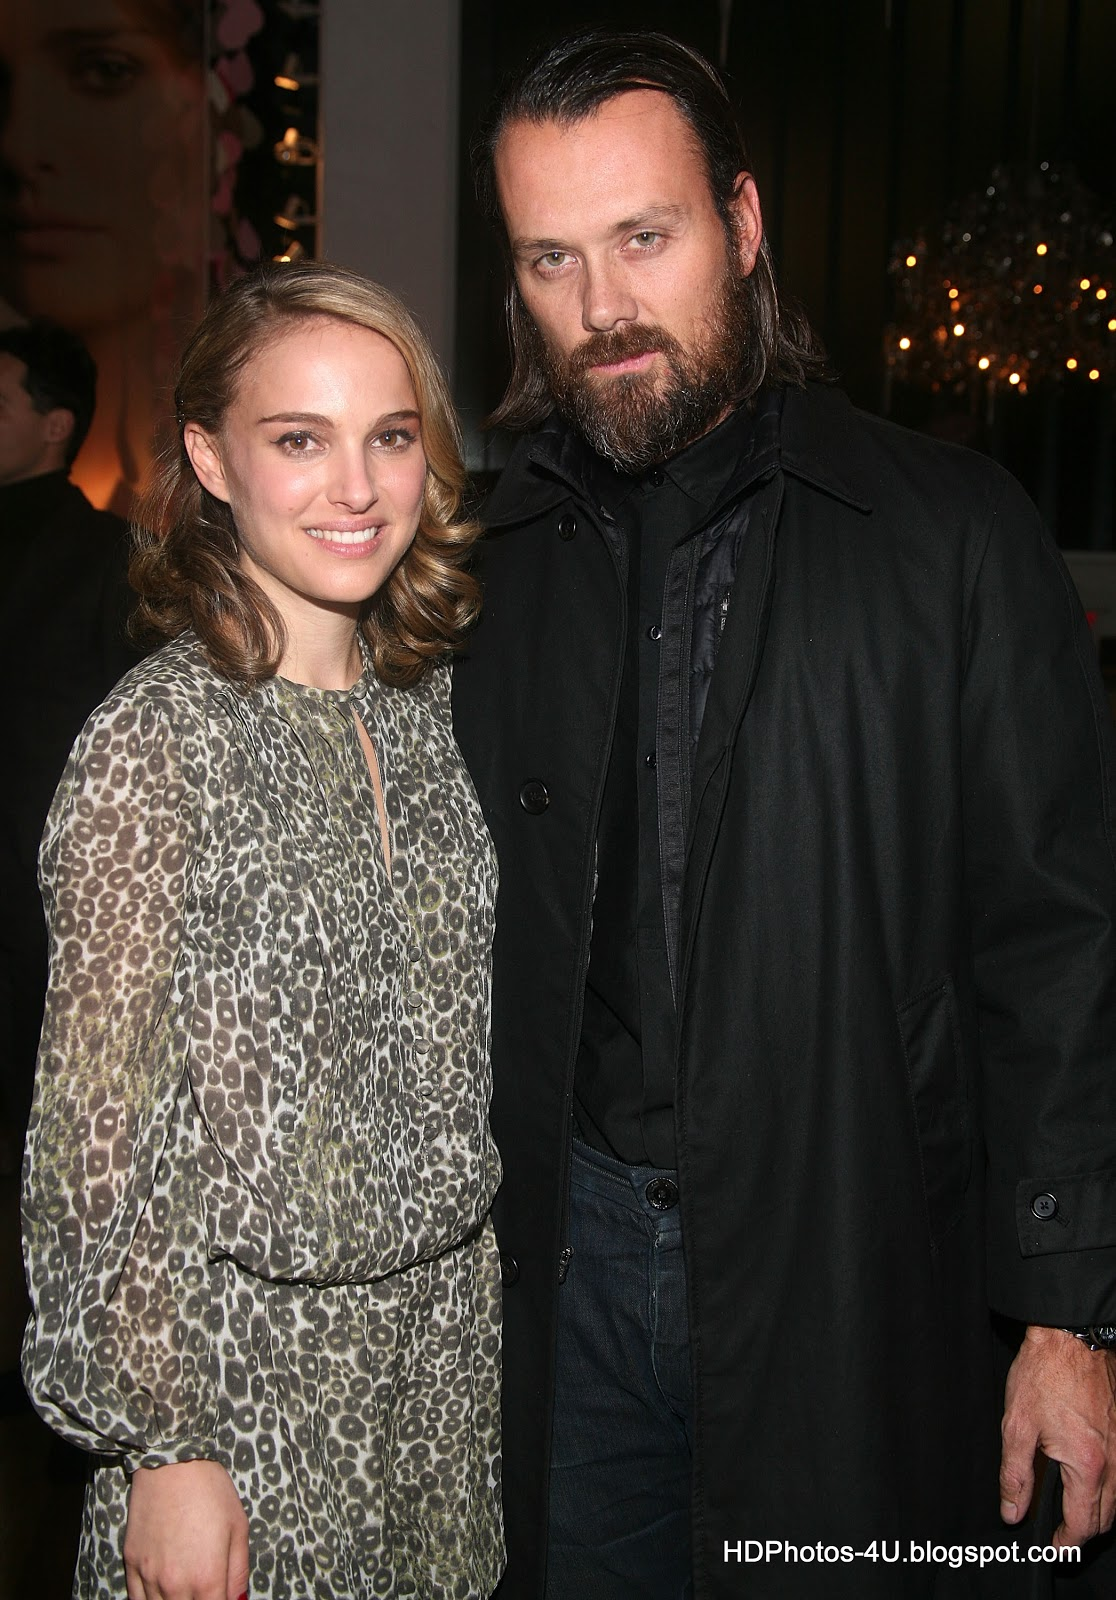 thor jewish personals Most jewish moment: thor is as goyishe as they come, but his adopted brother loki fits some tropes runner-up moment goes to dating, and then breaking up with a woman played by natalie portman.